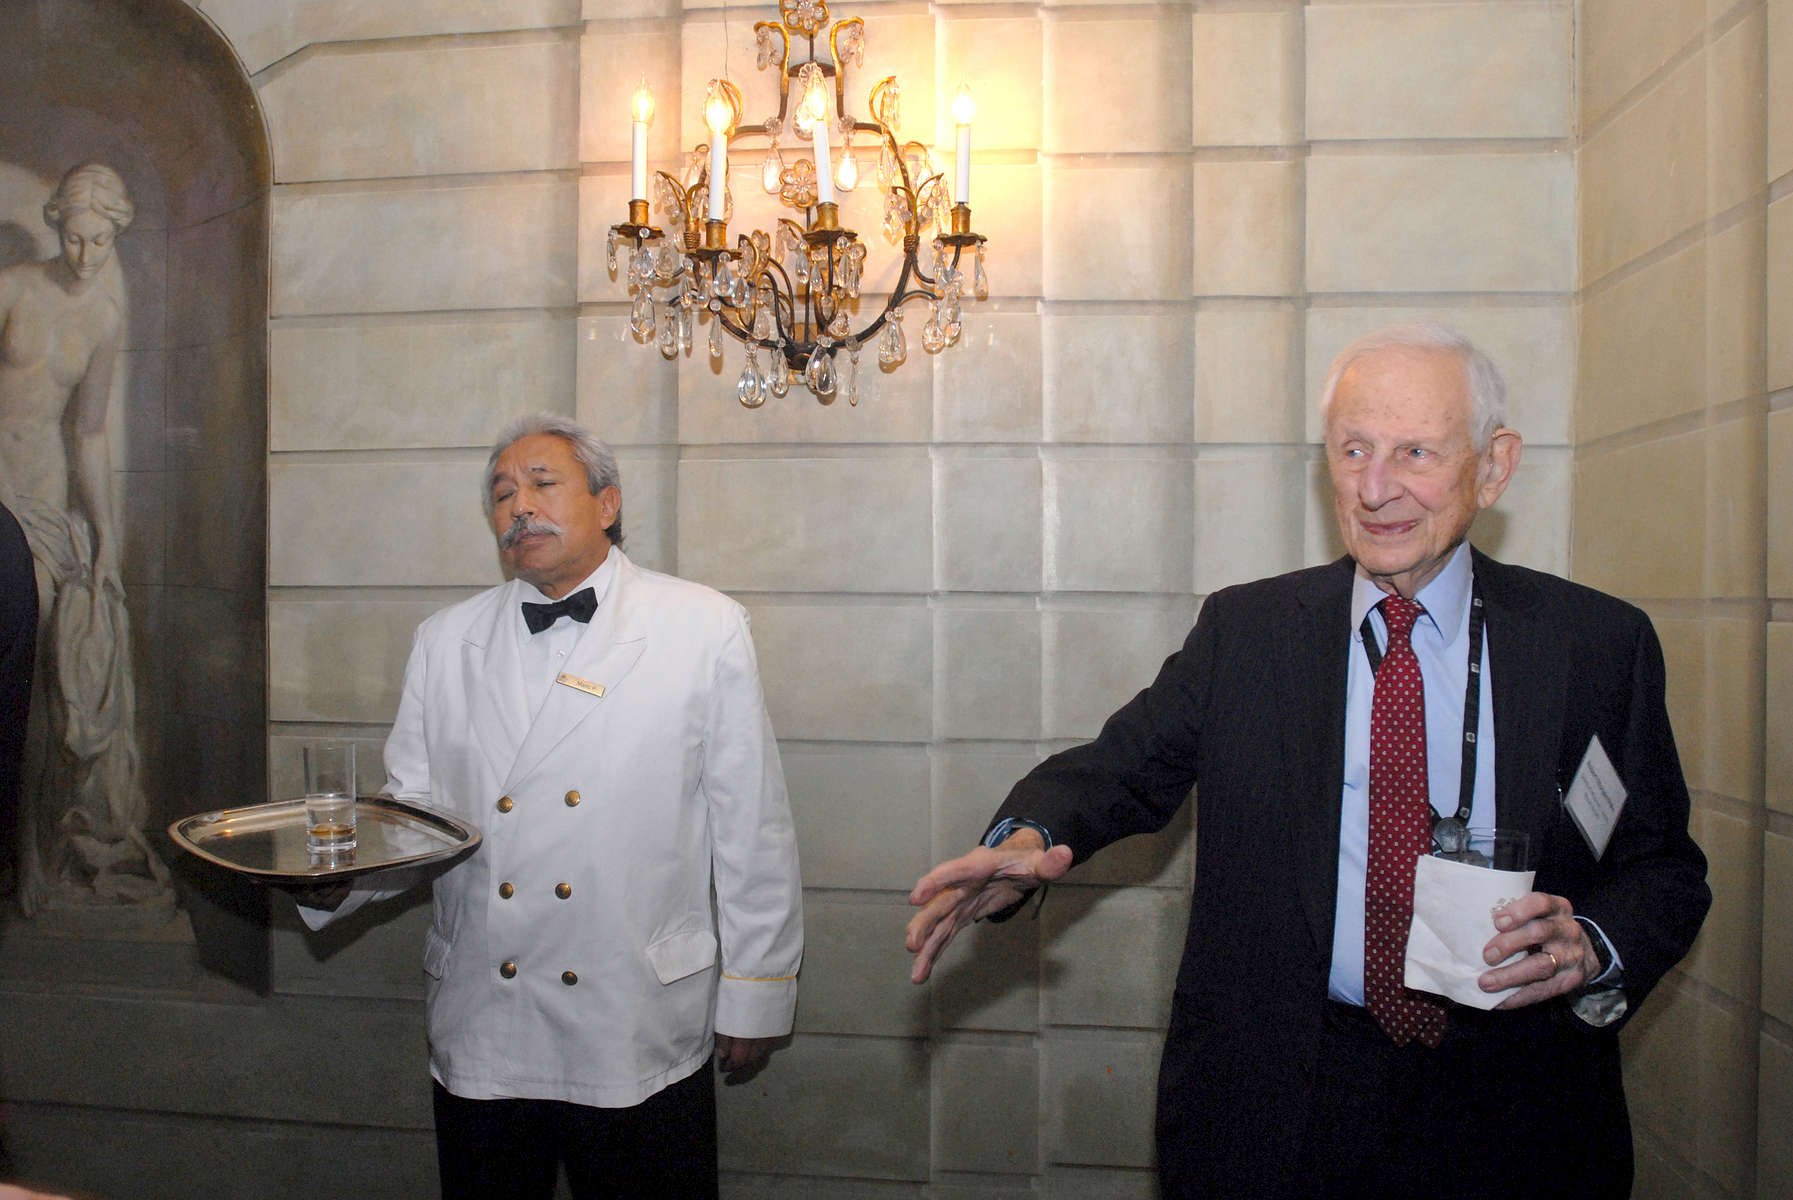 Waiter and Former Manhattan District Attorney Robert M. Morgenthau - Pierre Hotel, NYC.